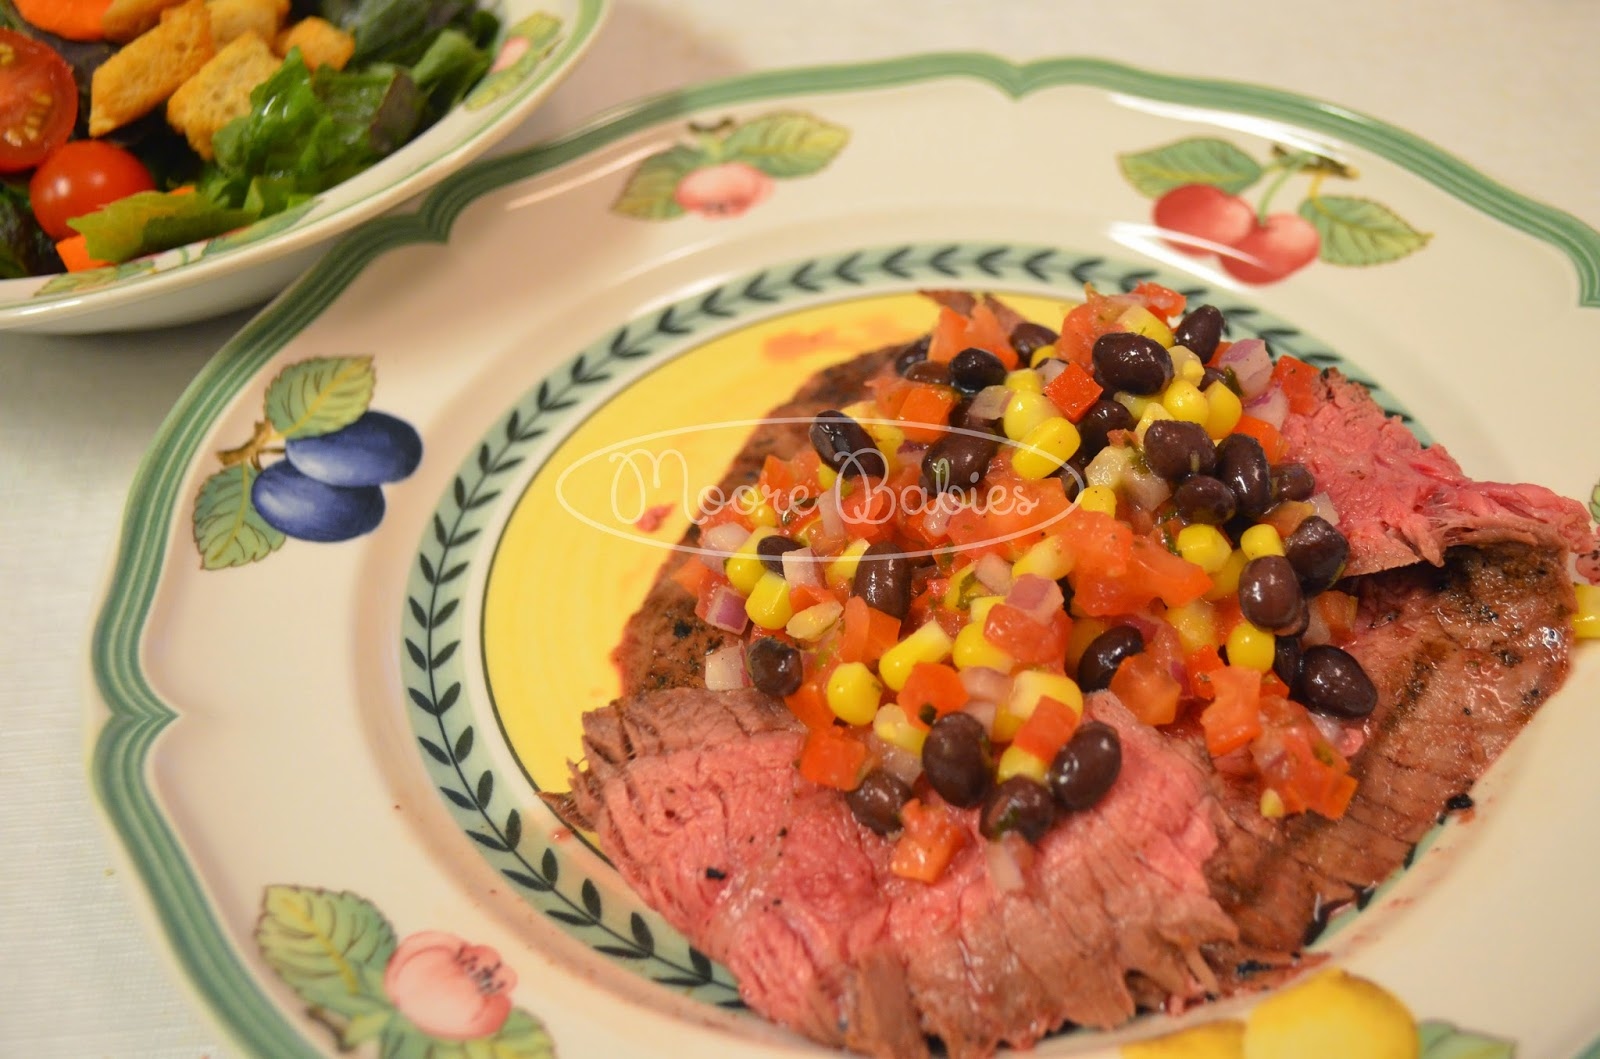 Grilled Flank Steak with black beans, corn, and tomatoes